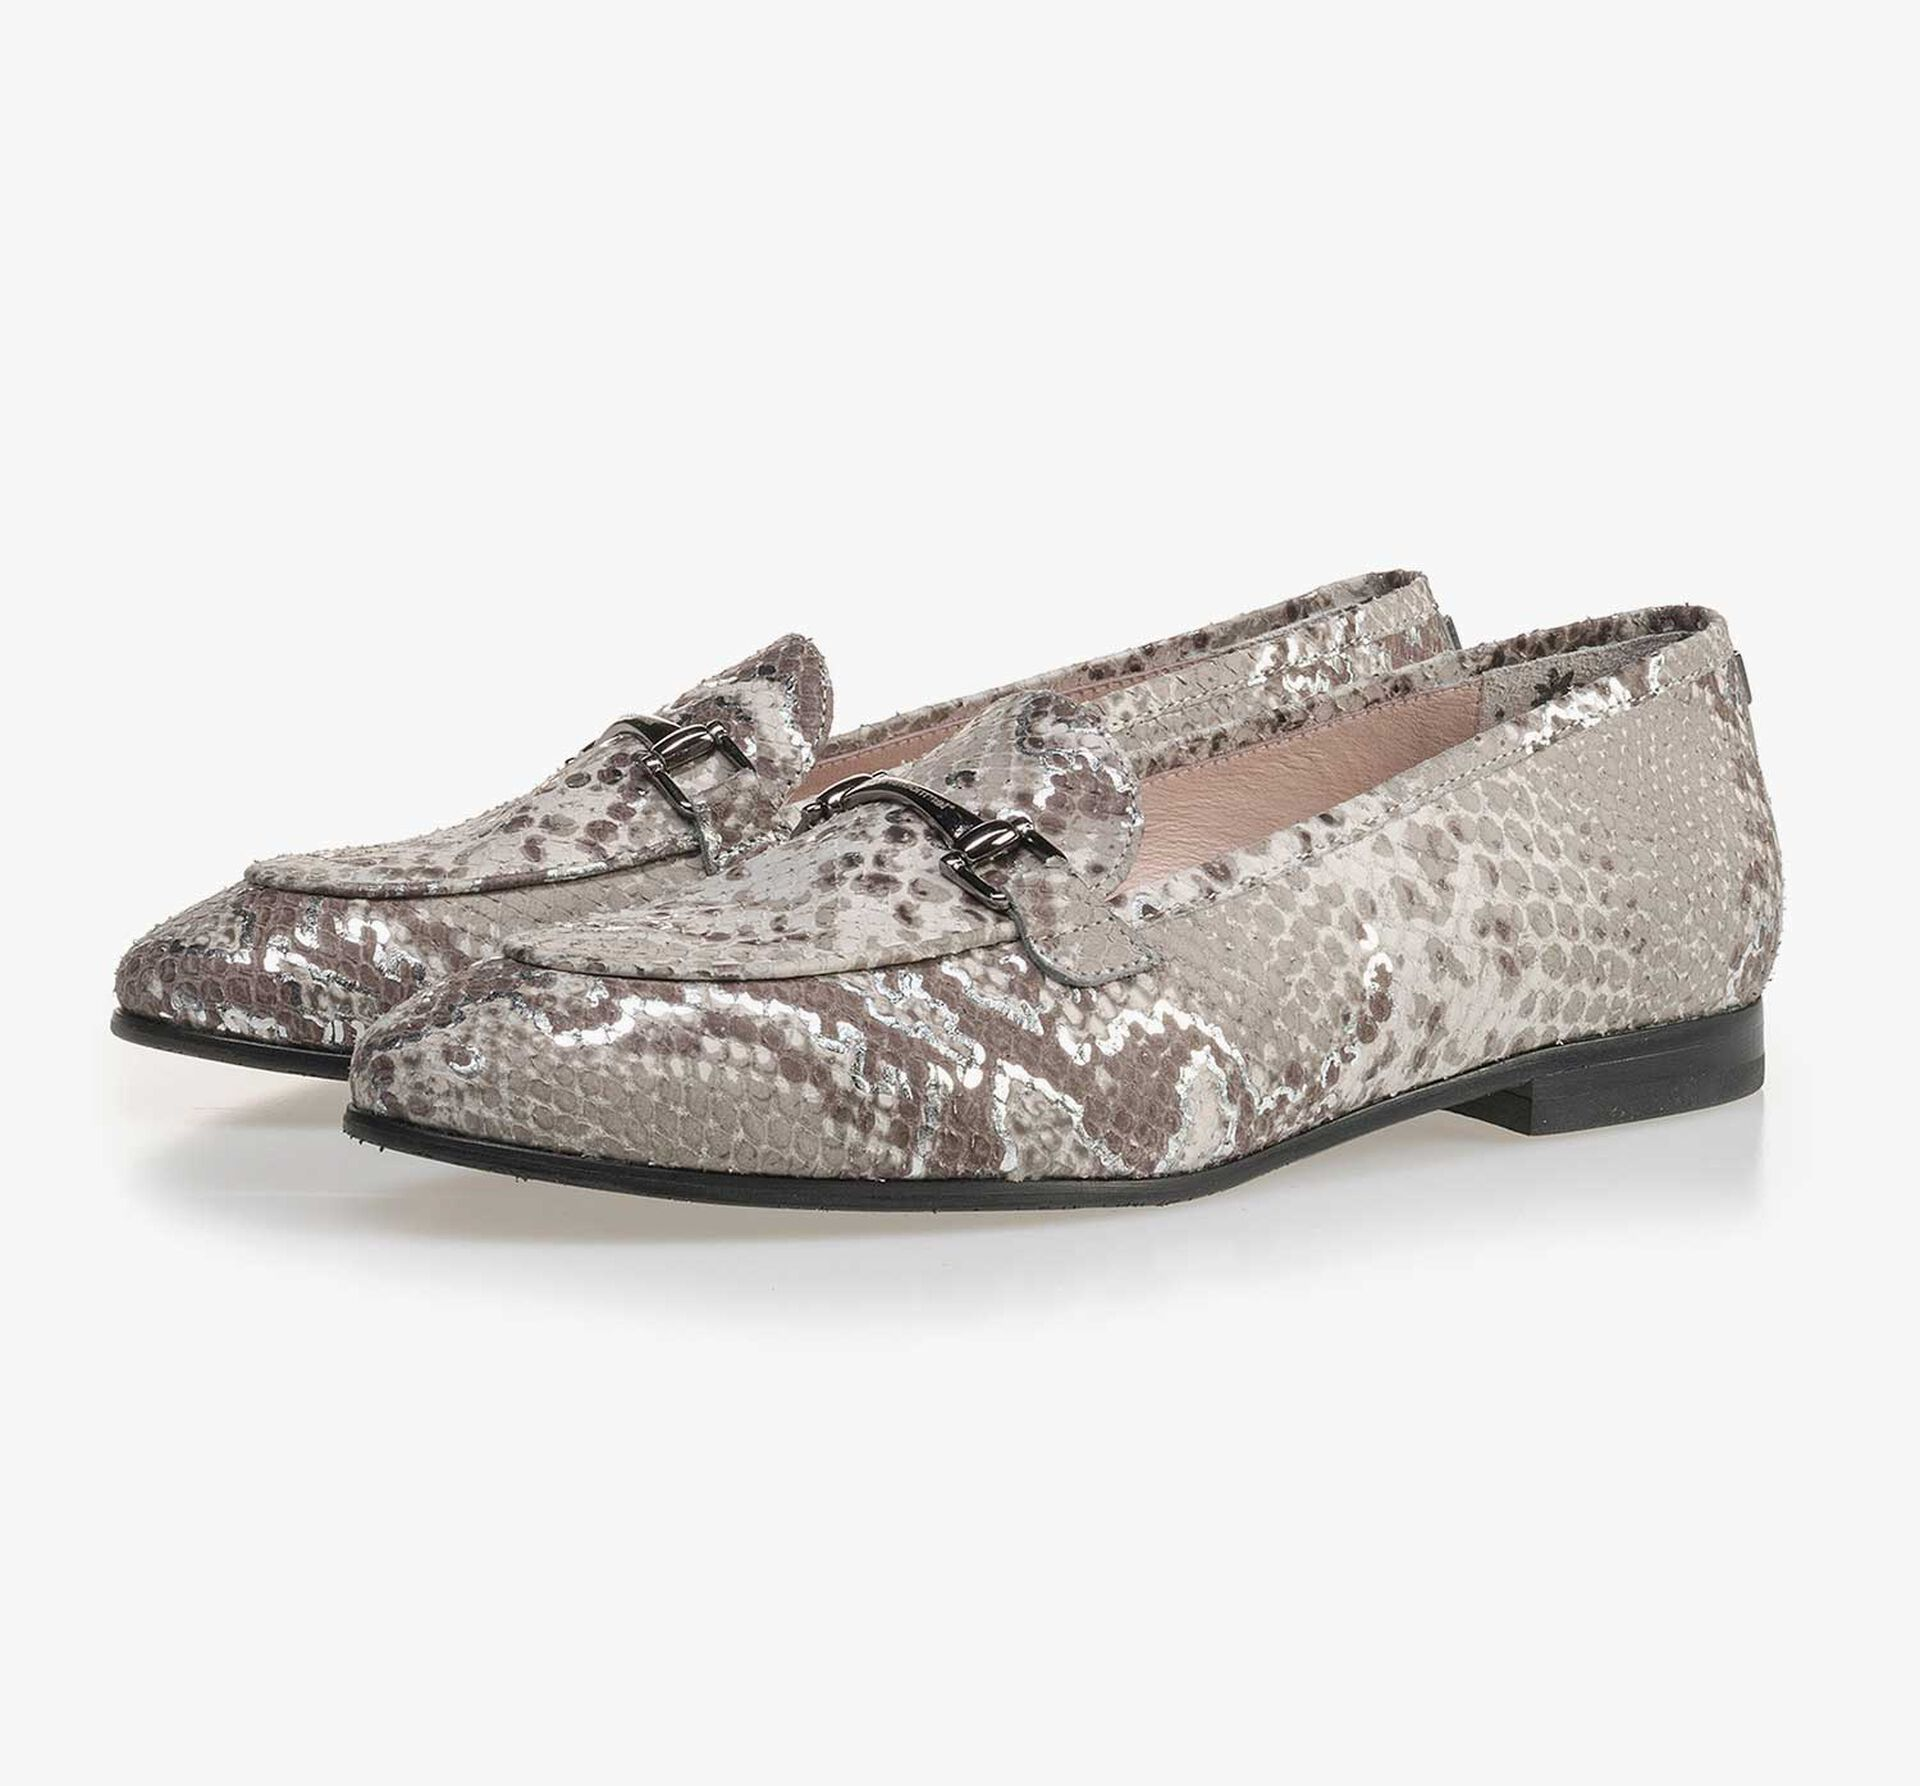 Taupe-coloured leather loafer with snake print